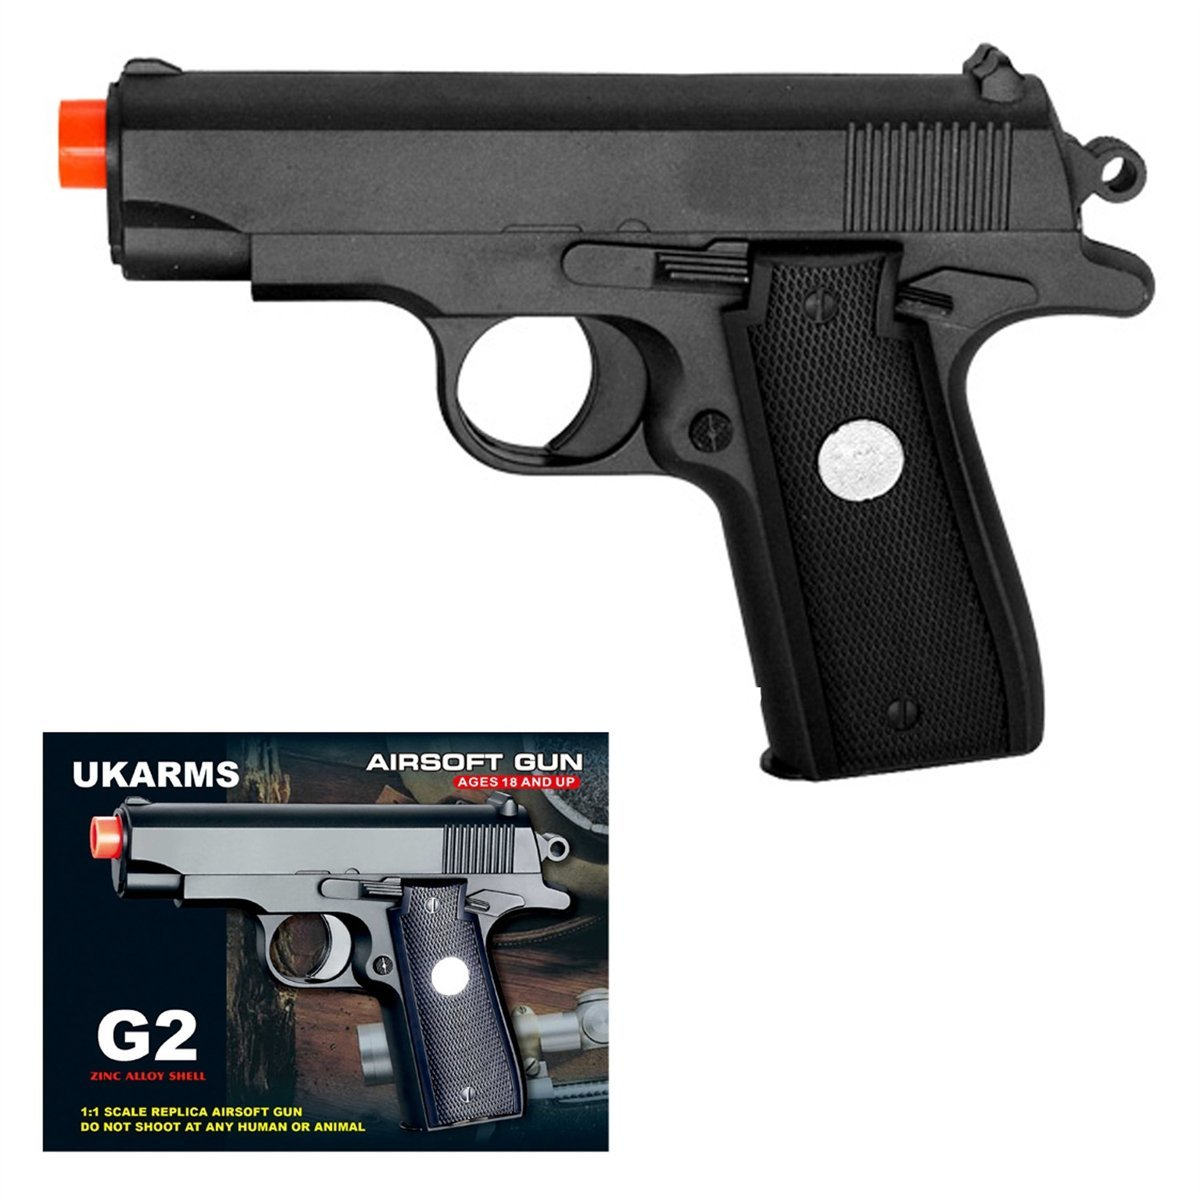 G2 Full Metal Airsoft Handgun